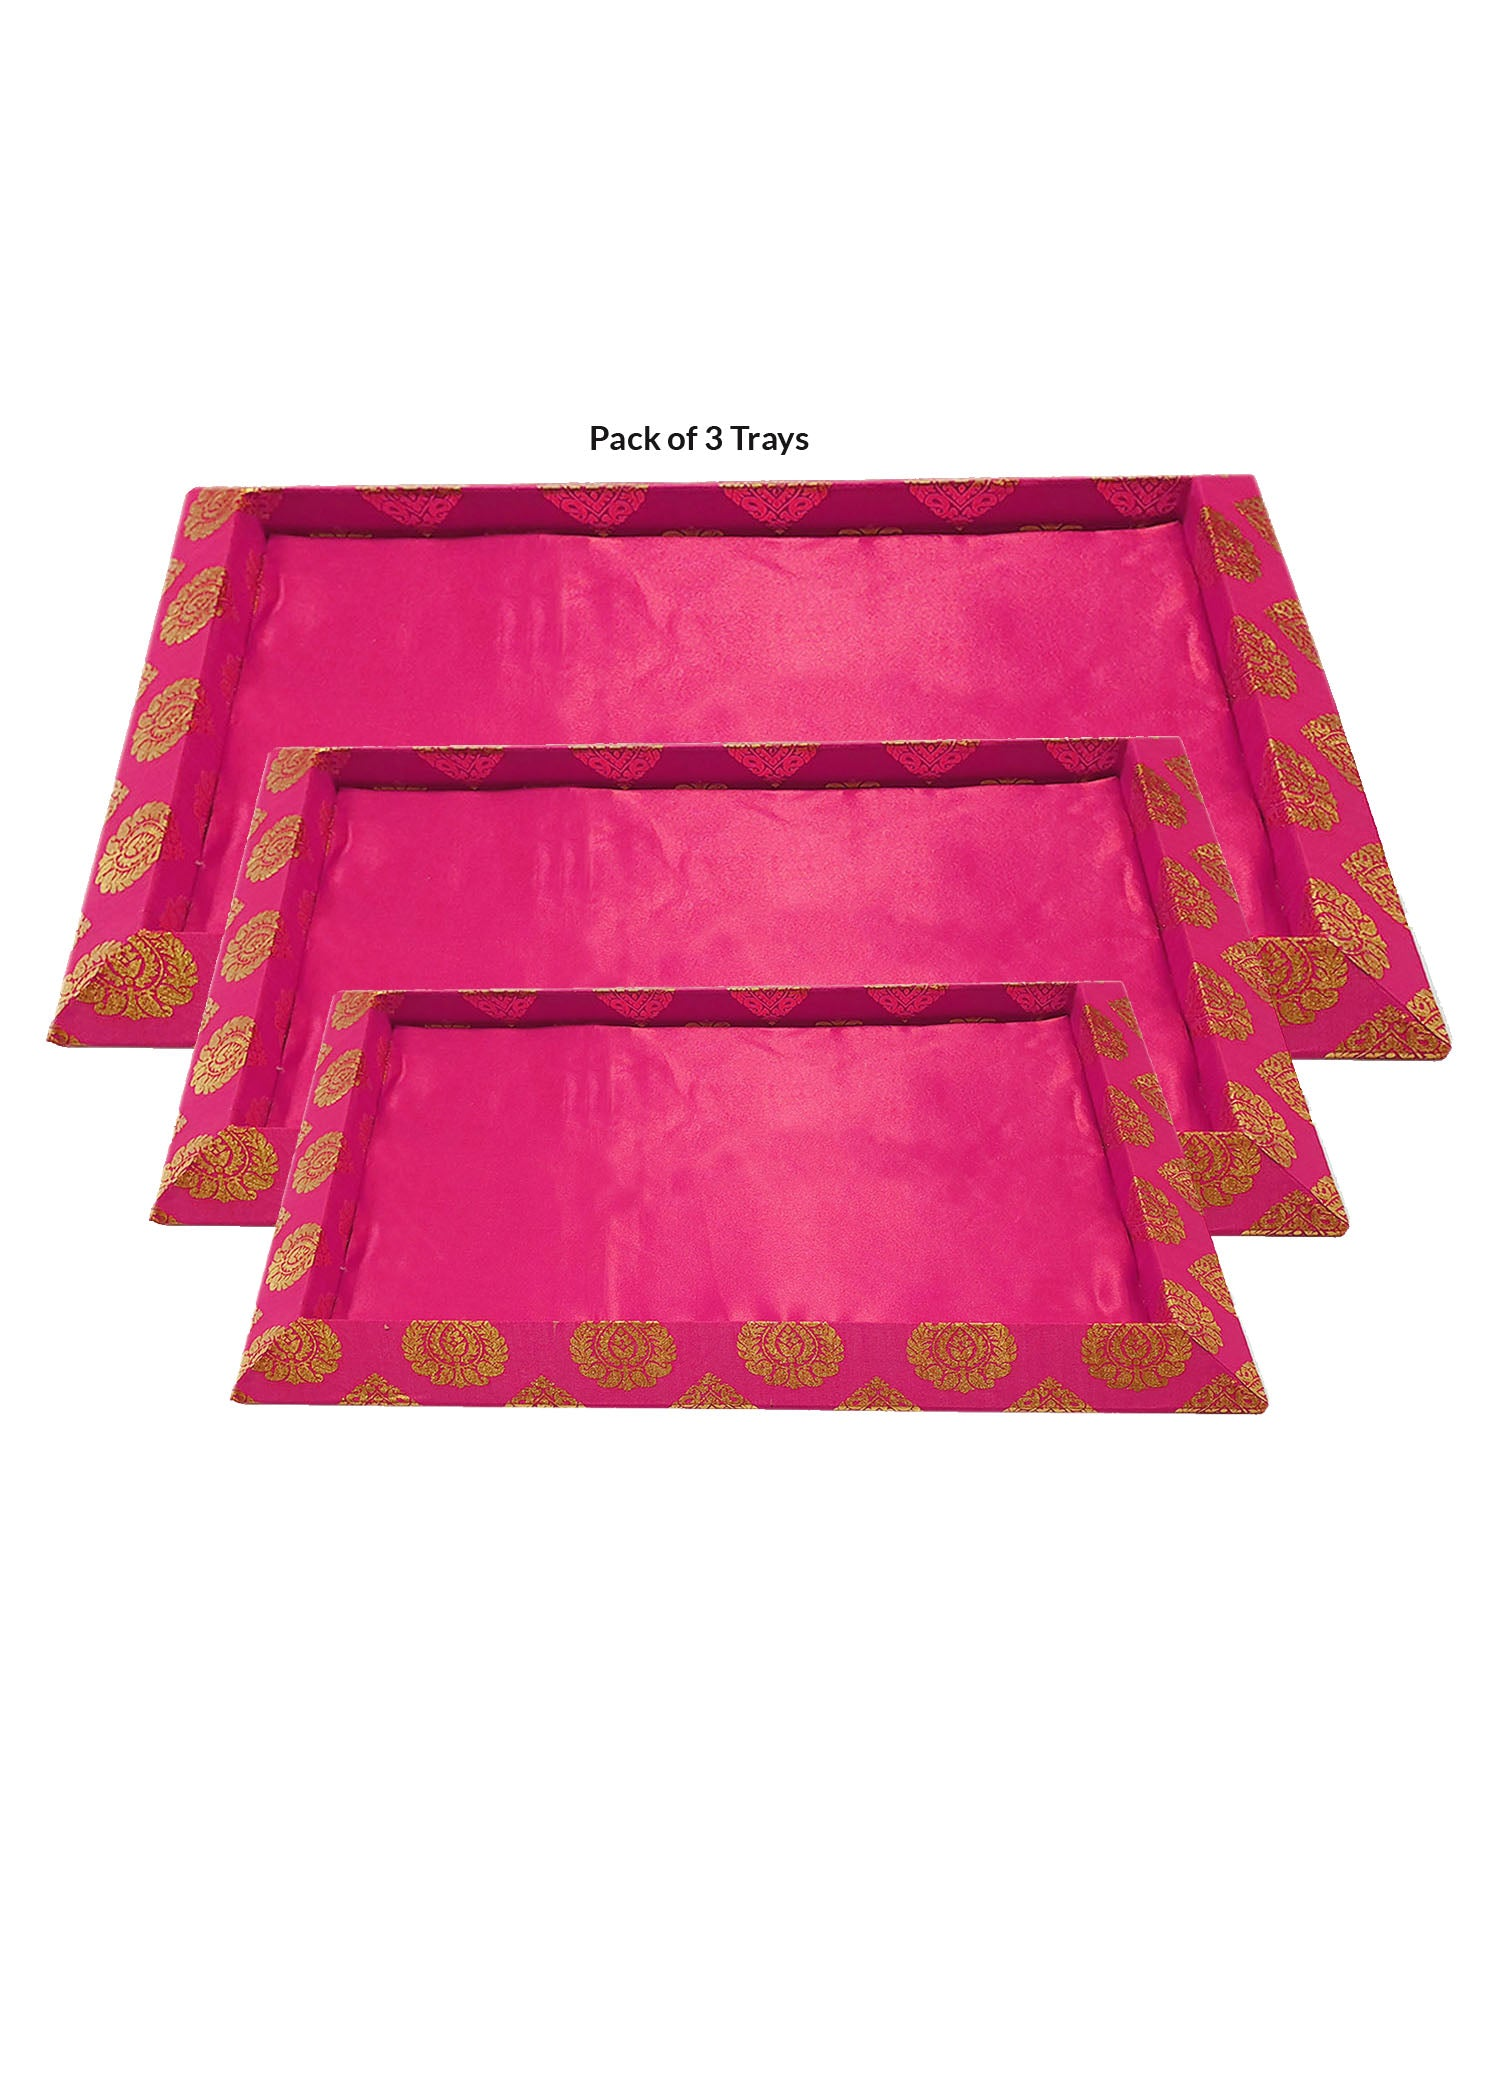 Pink Decorative Trays